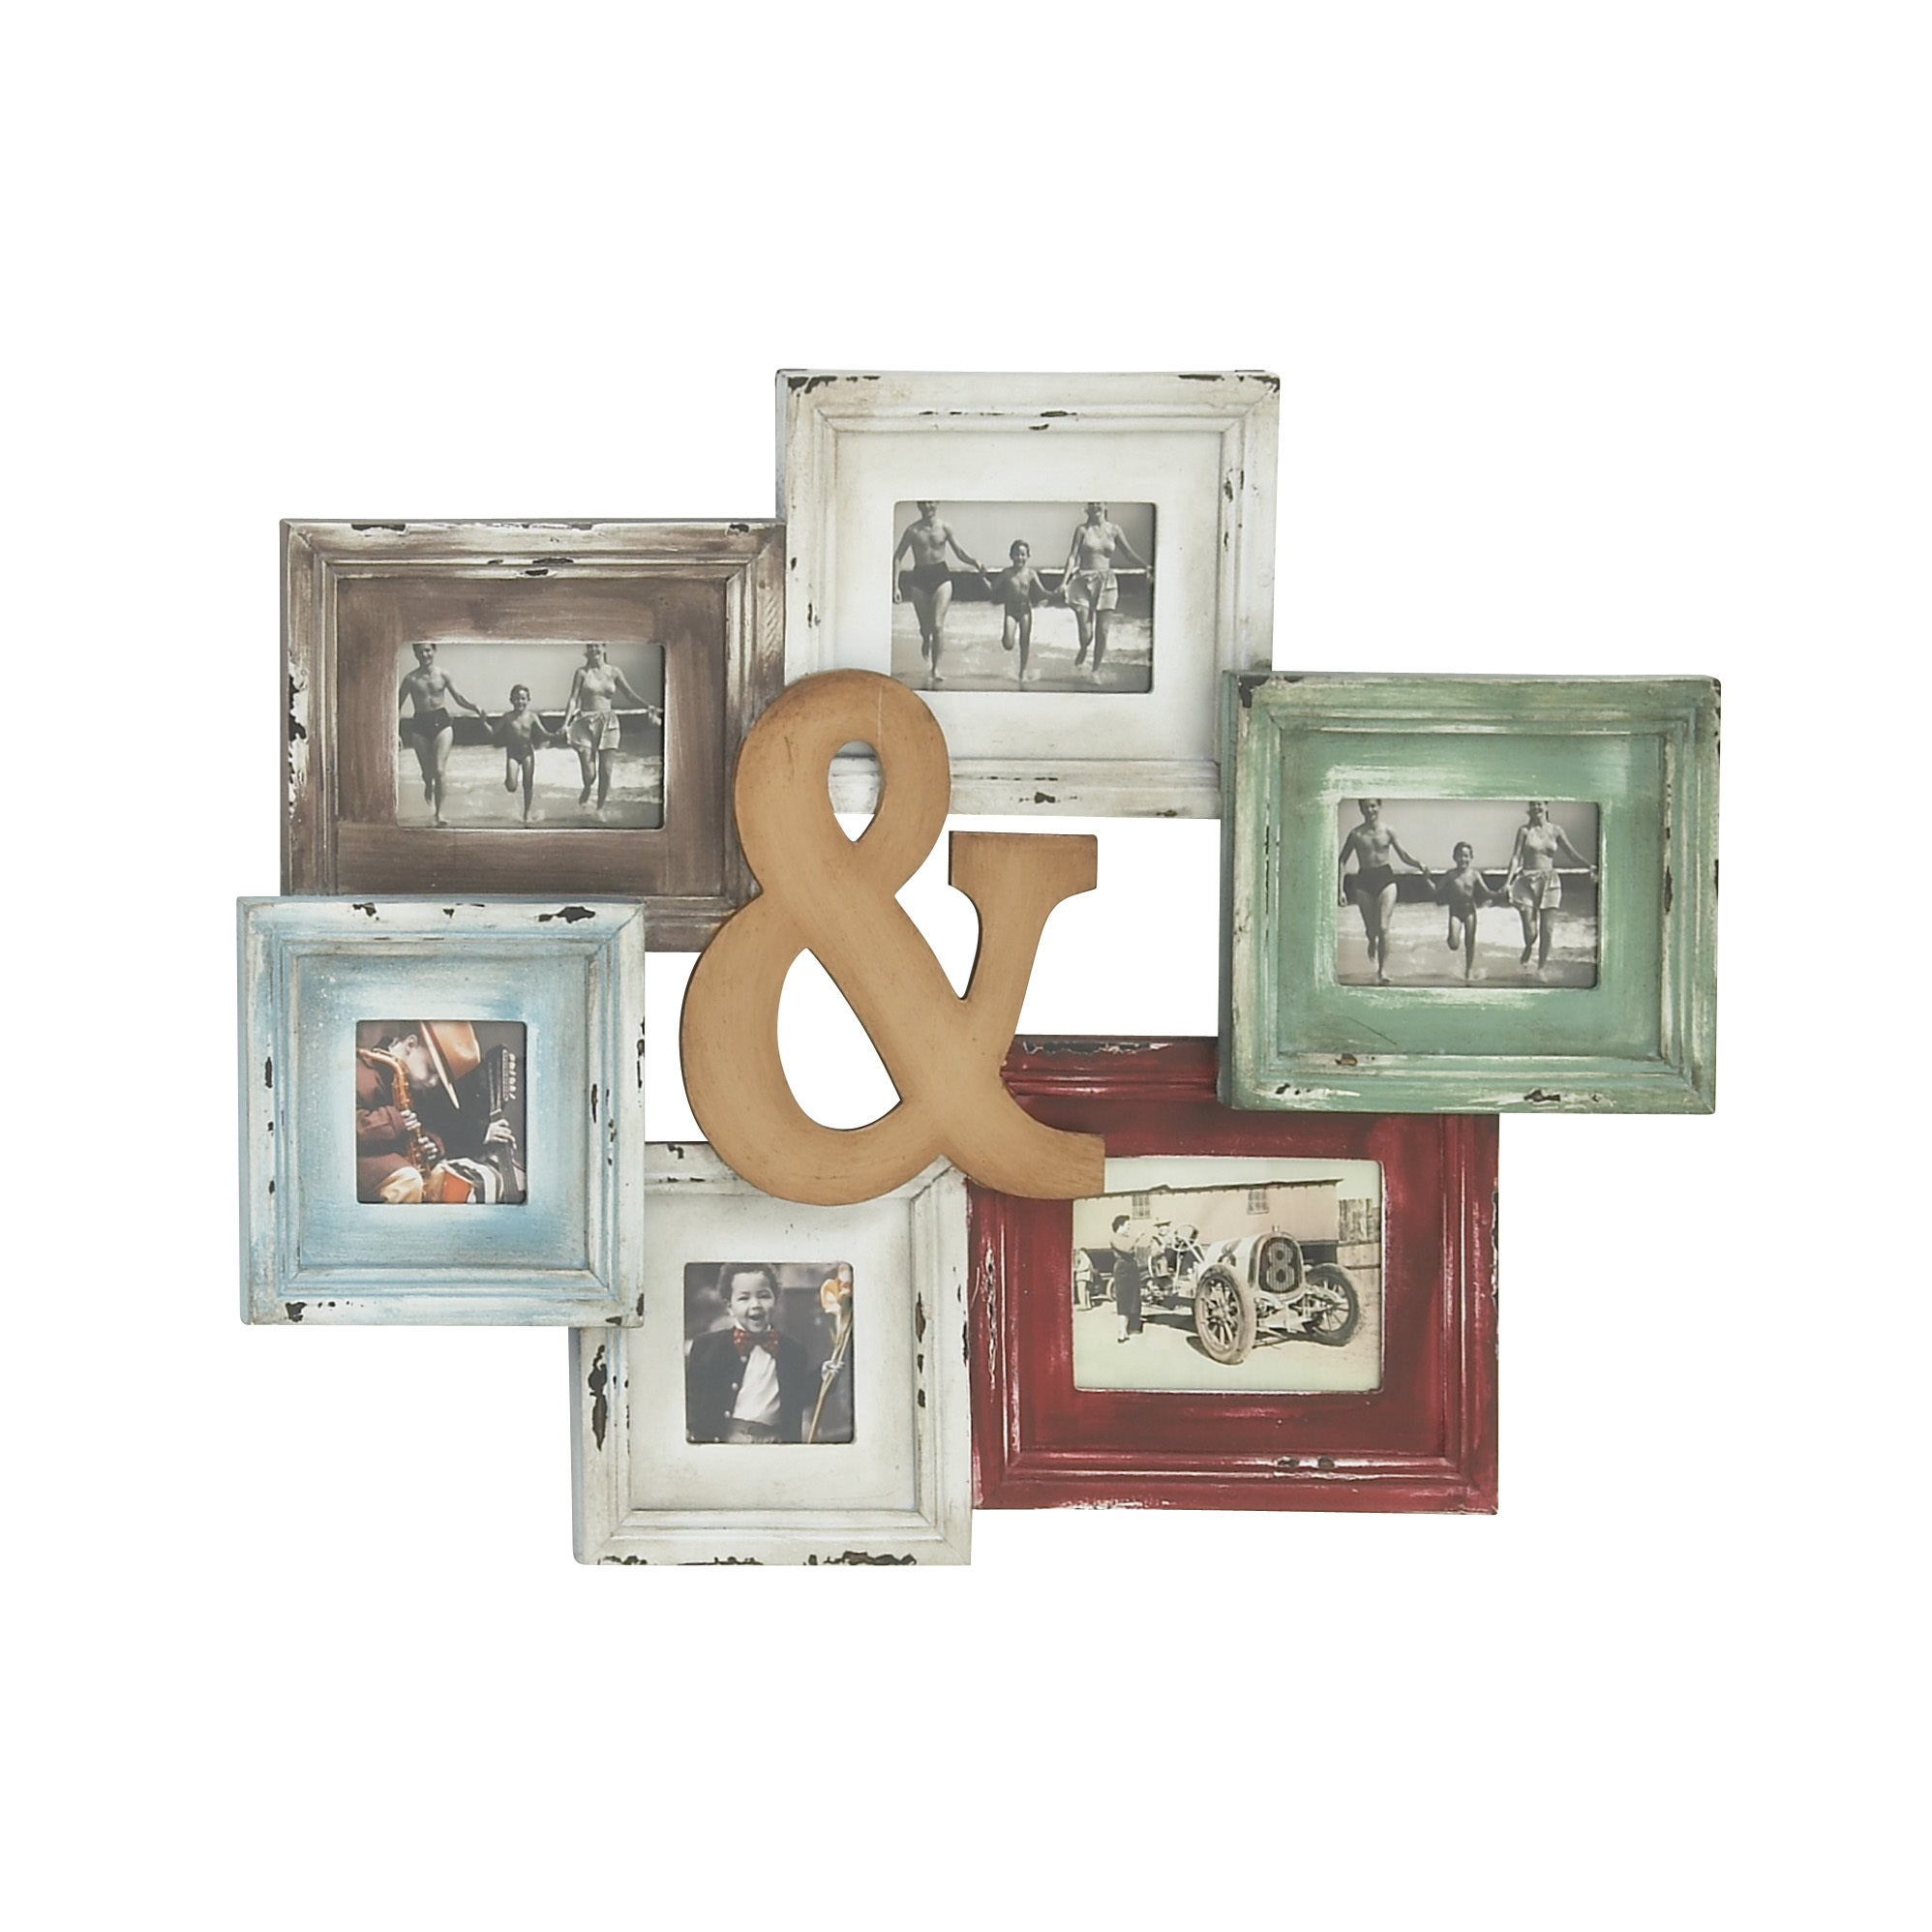 Wood photo collage frame free shipping today overstock wood photo collage frame free shipping today overstock 17330118 jeuxipadfo Choice Image